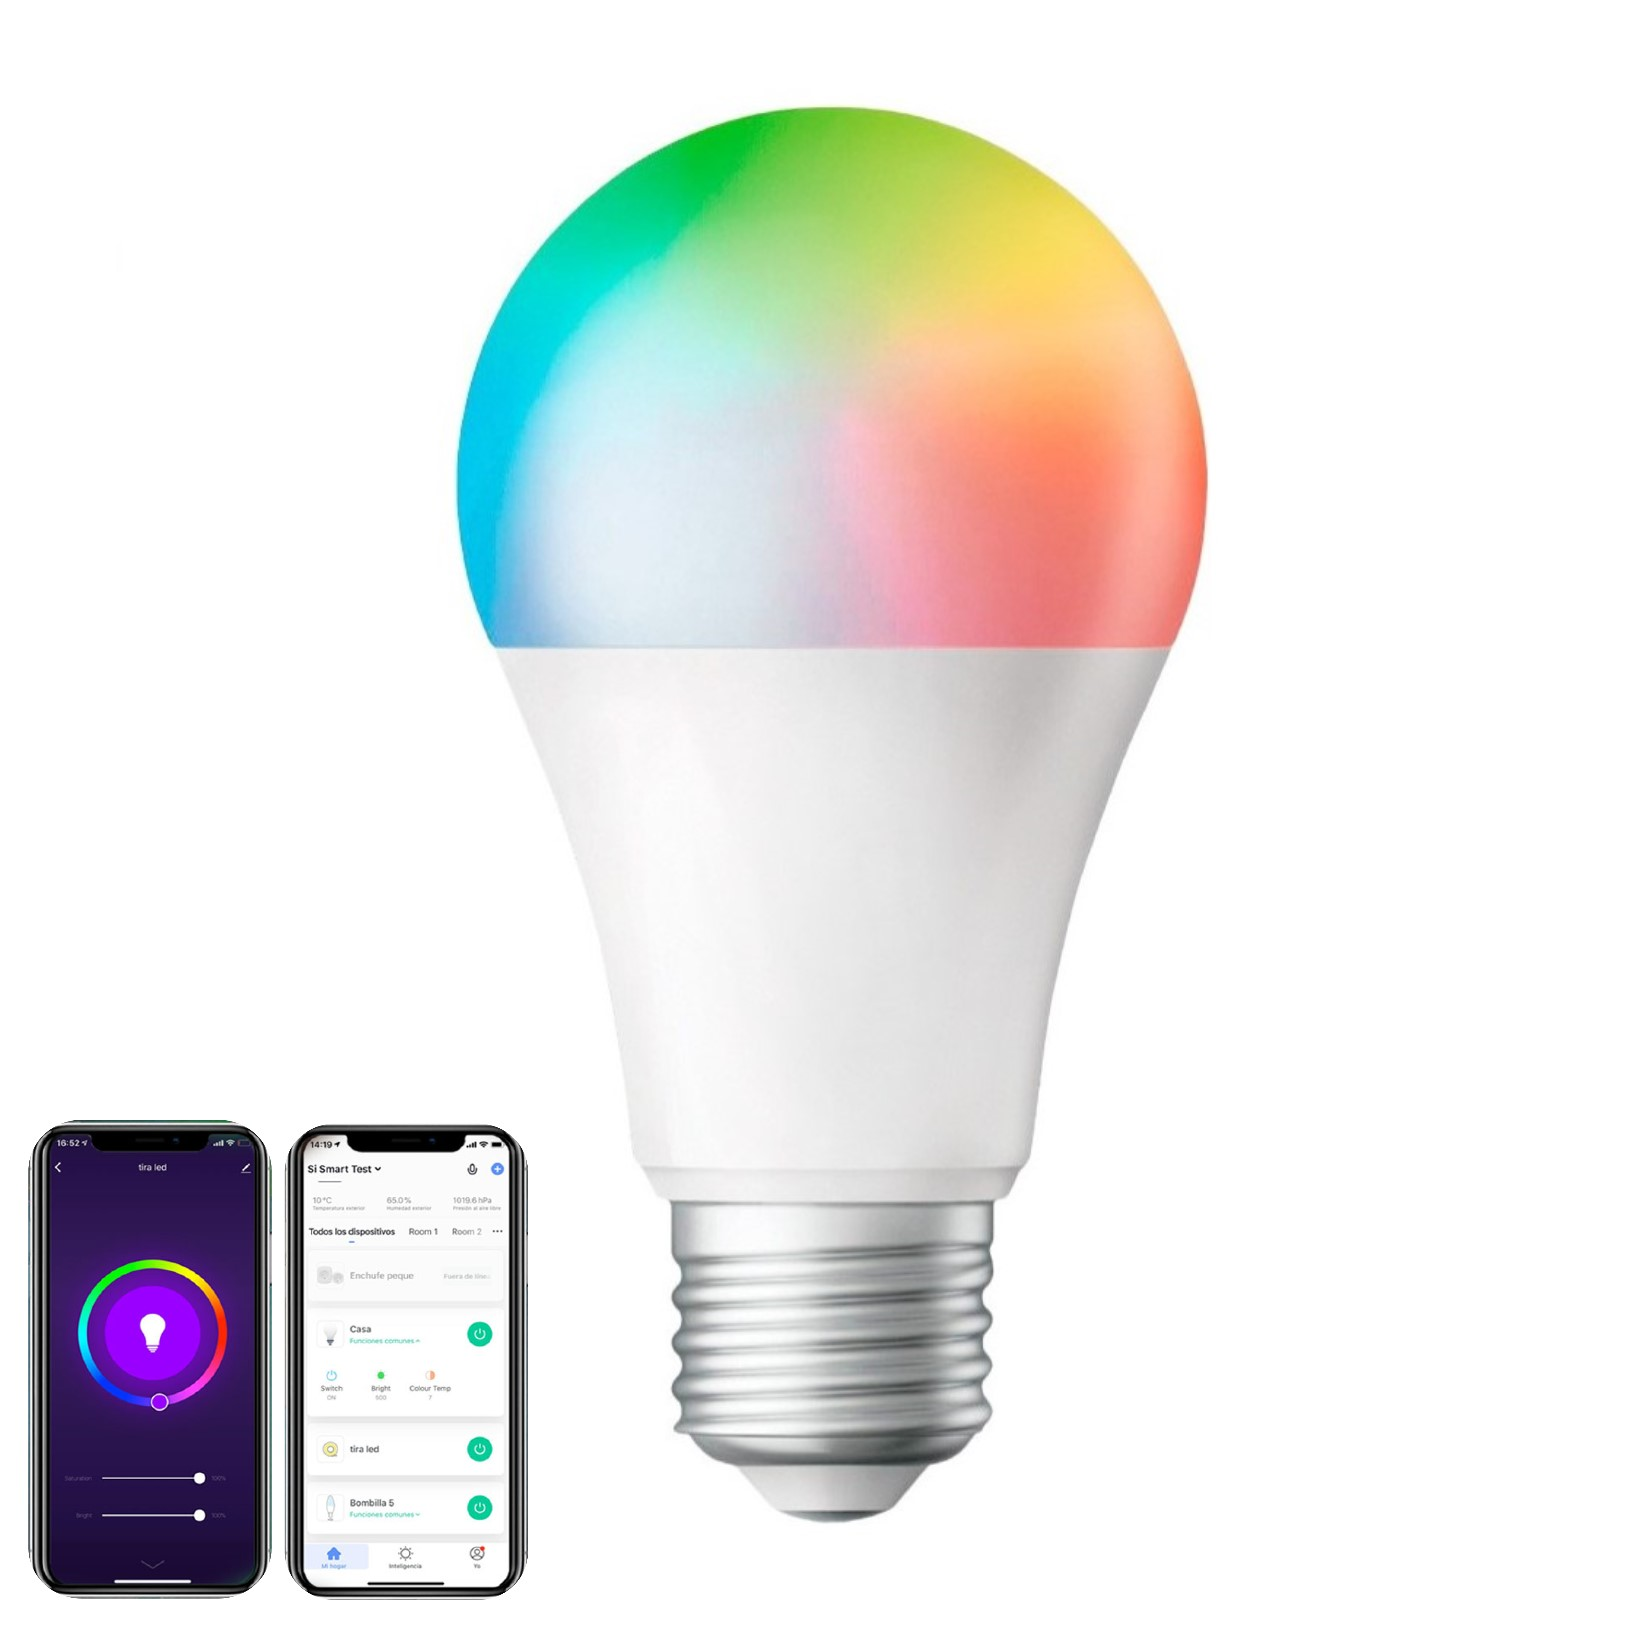 Foco Inteligente SMART WiFi LED RGB 10w Tuya Smart / Smart Life